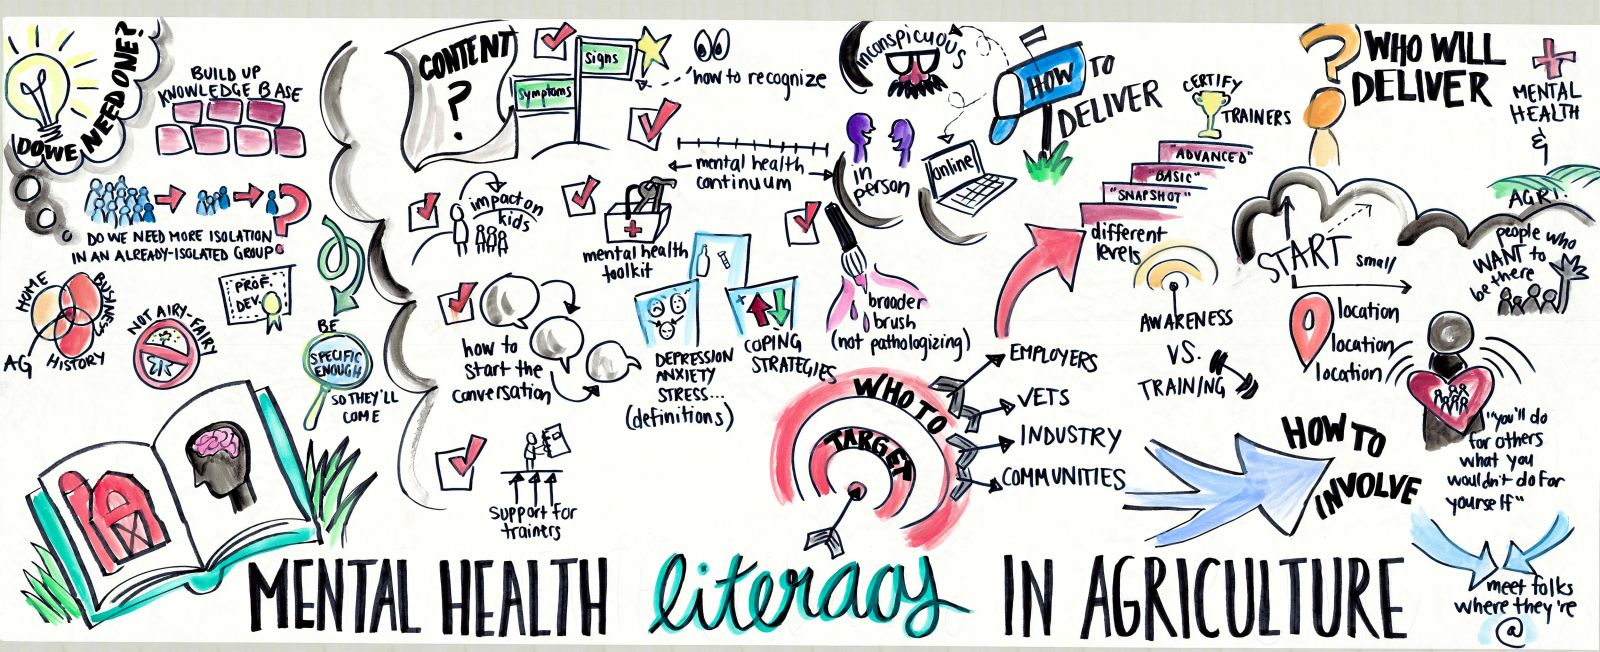 Image describing mental health literacy in agriculture